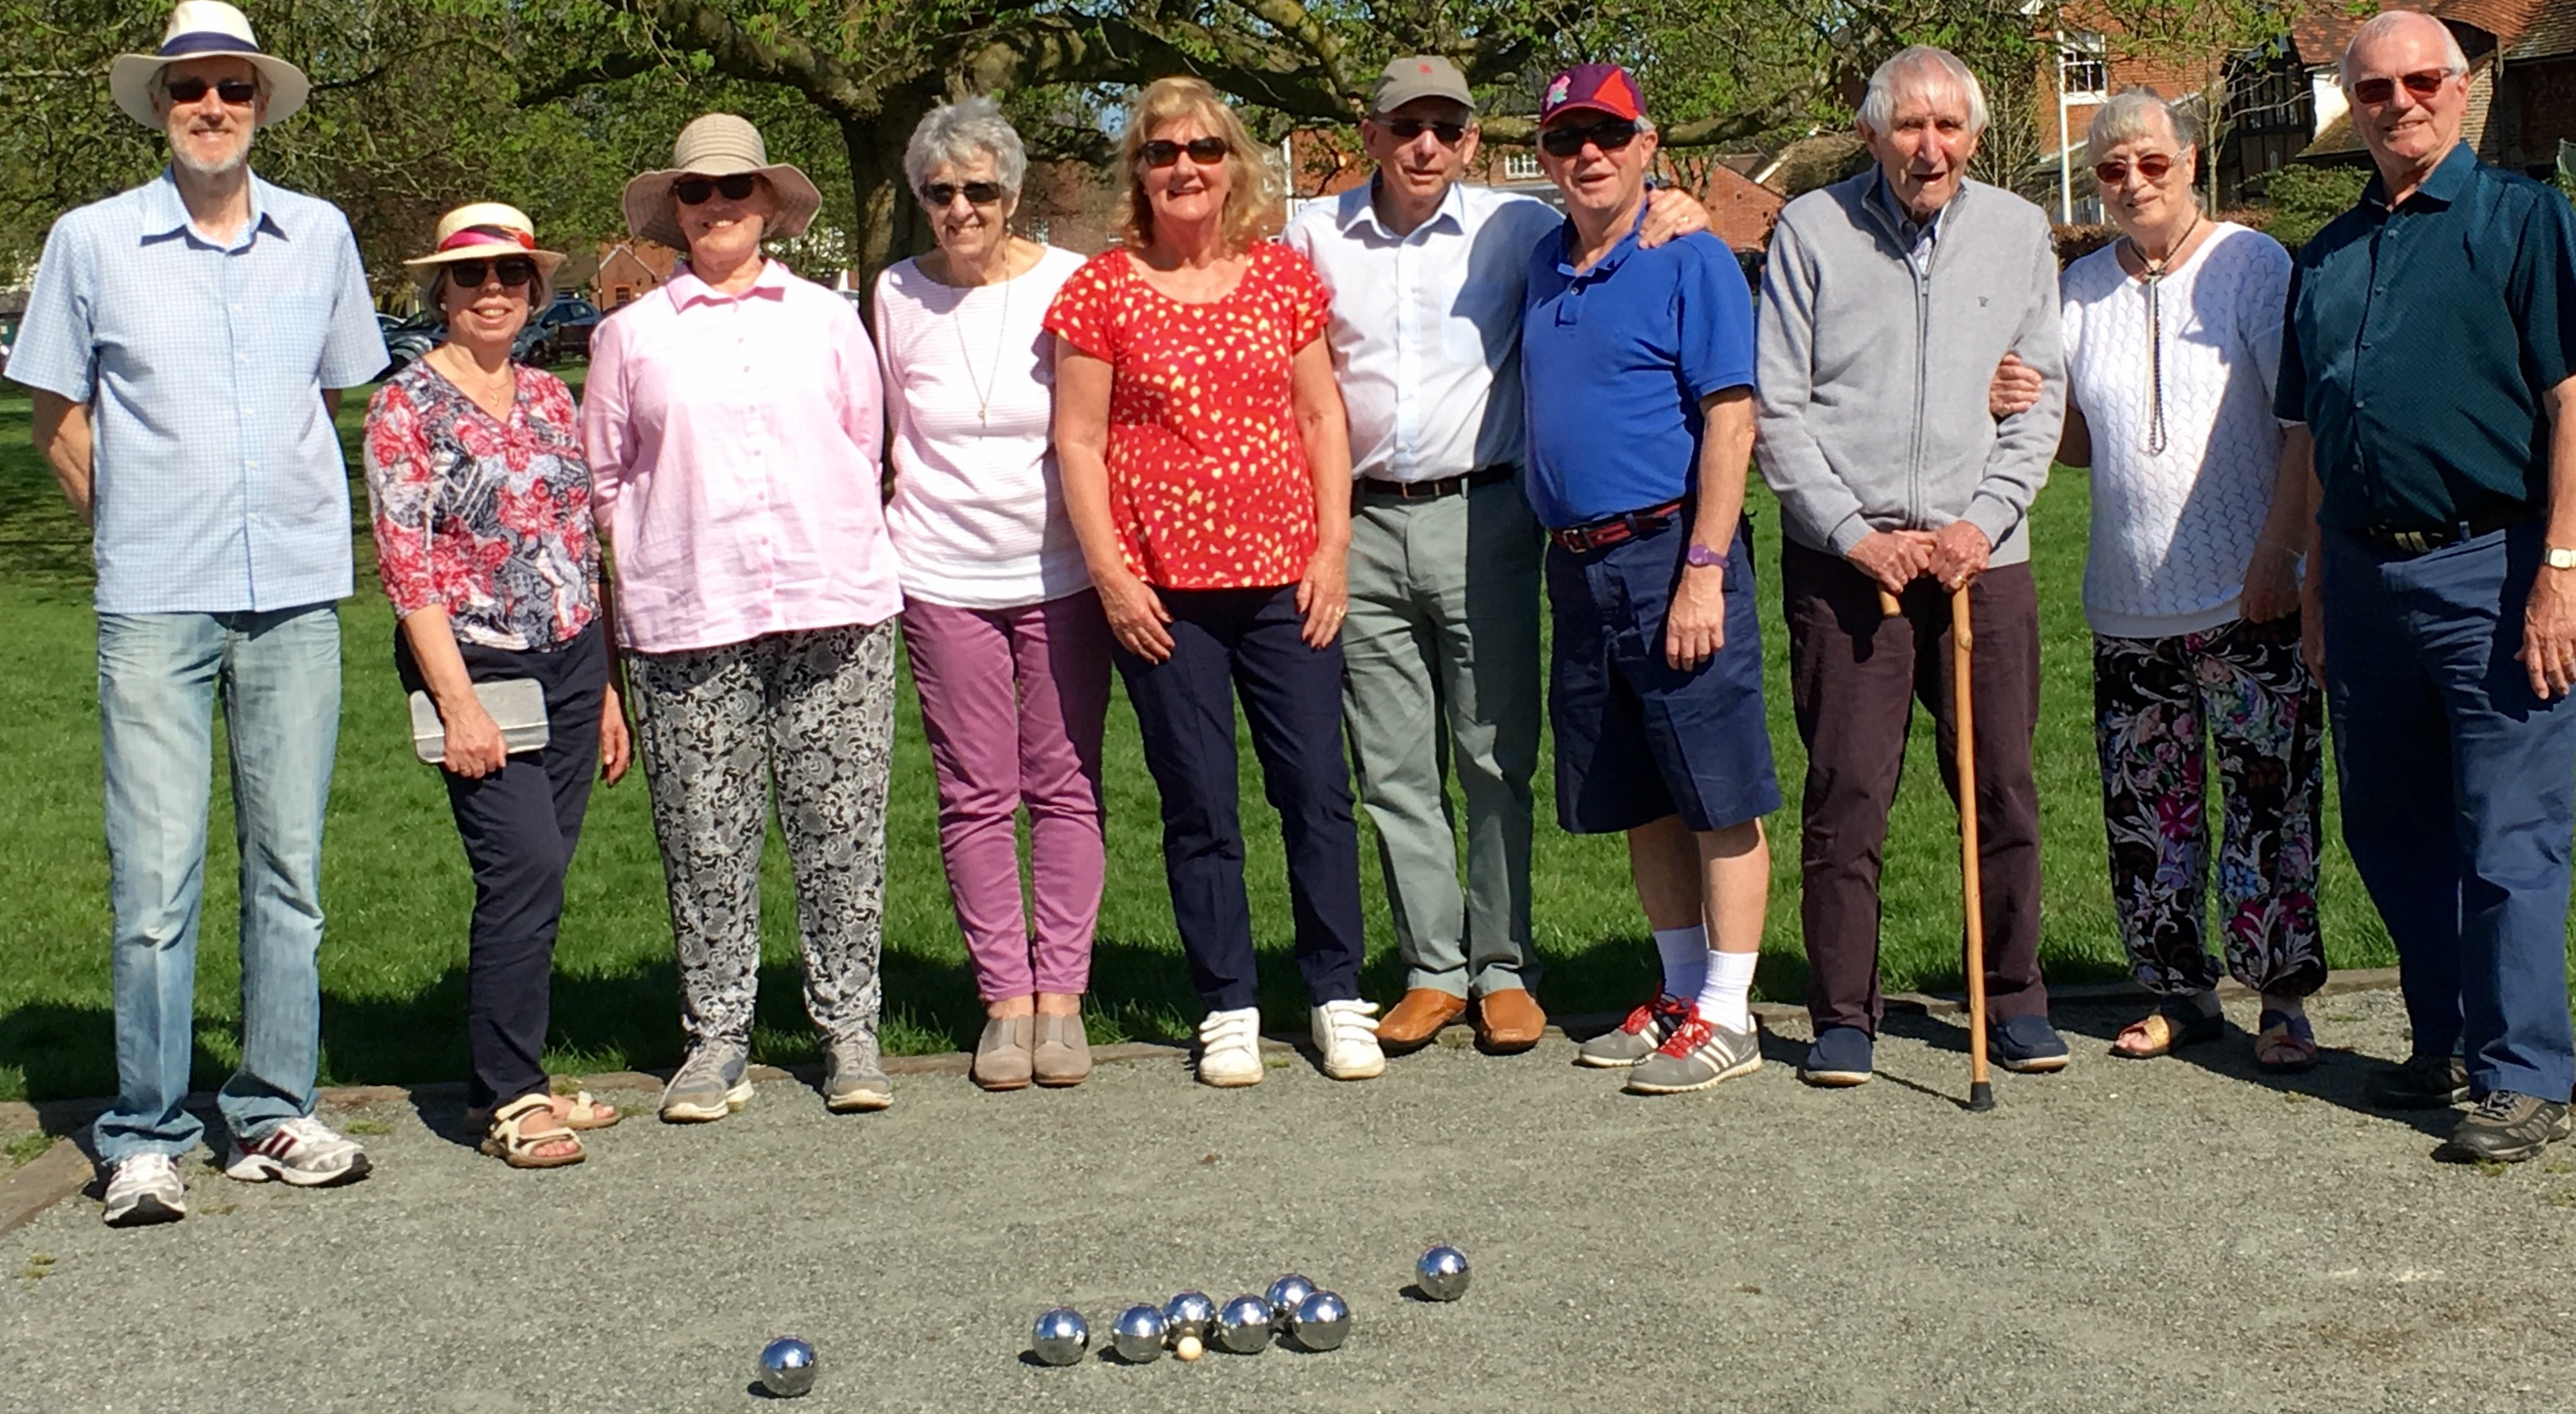 Boules in the sun